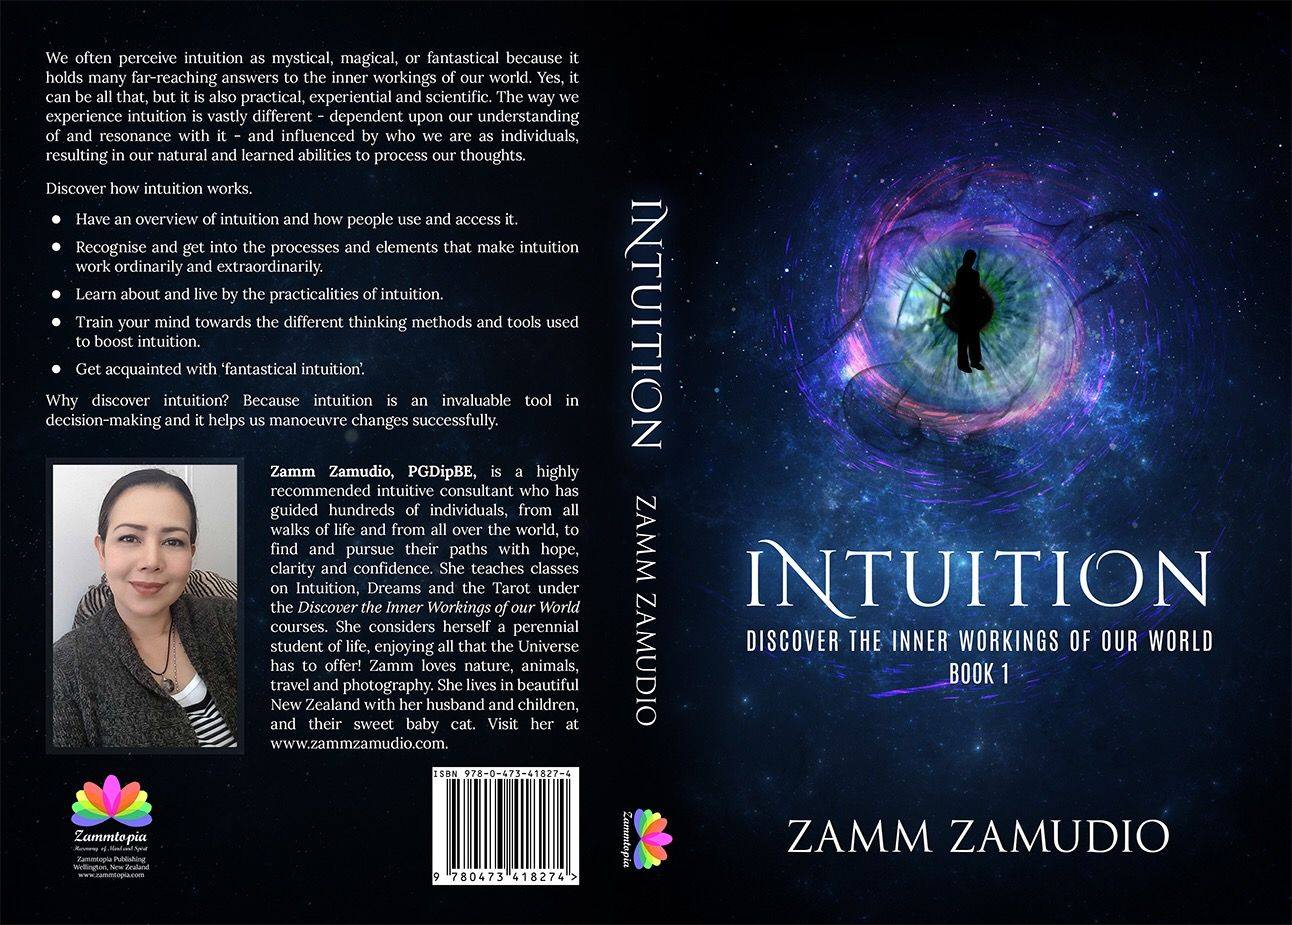 Intuition by Zamm Zamudio